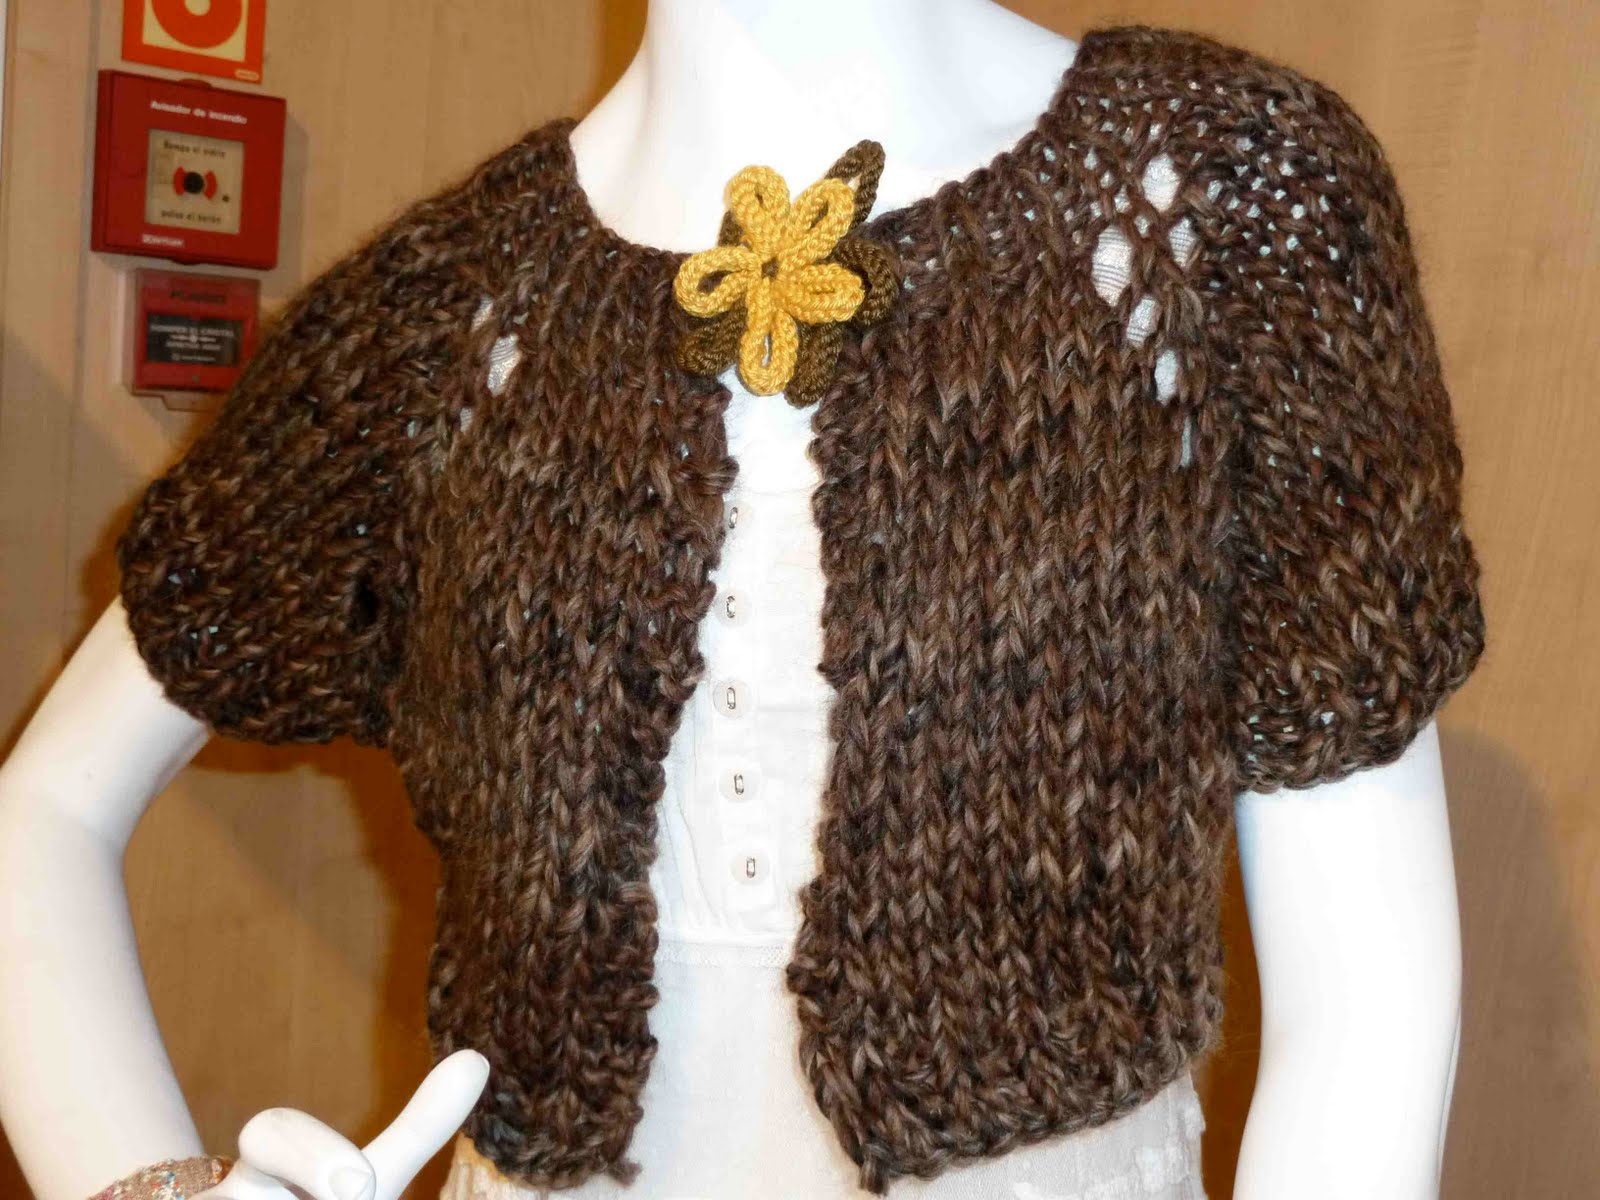 Copper Kettles and Woolen Mittens: septiembre 2010